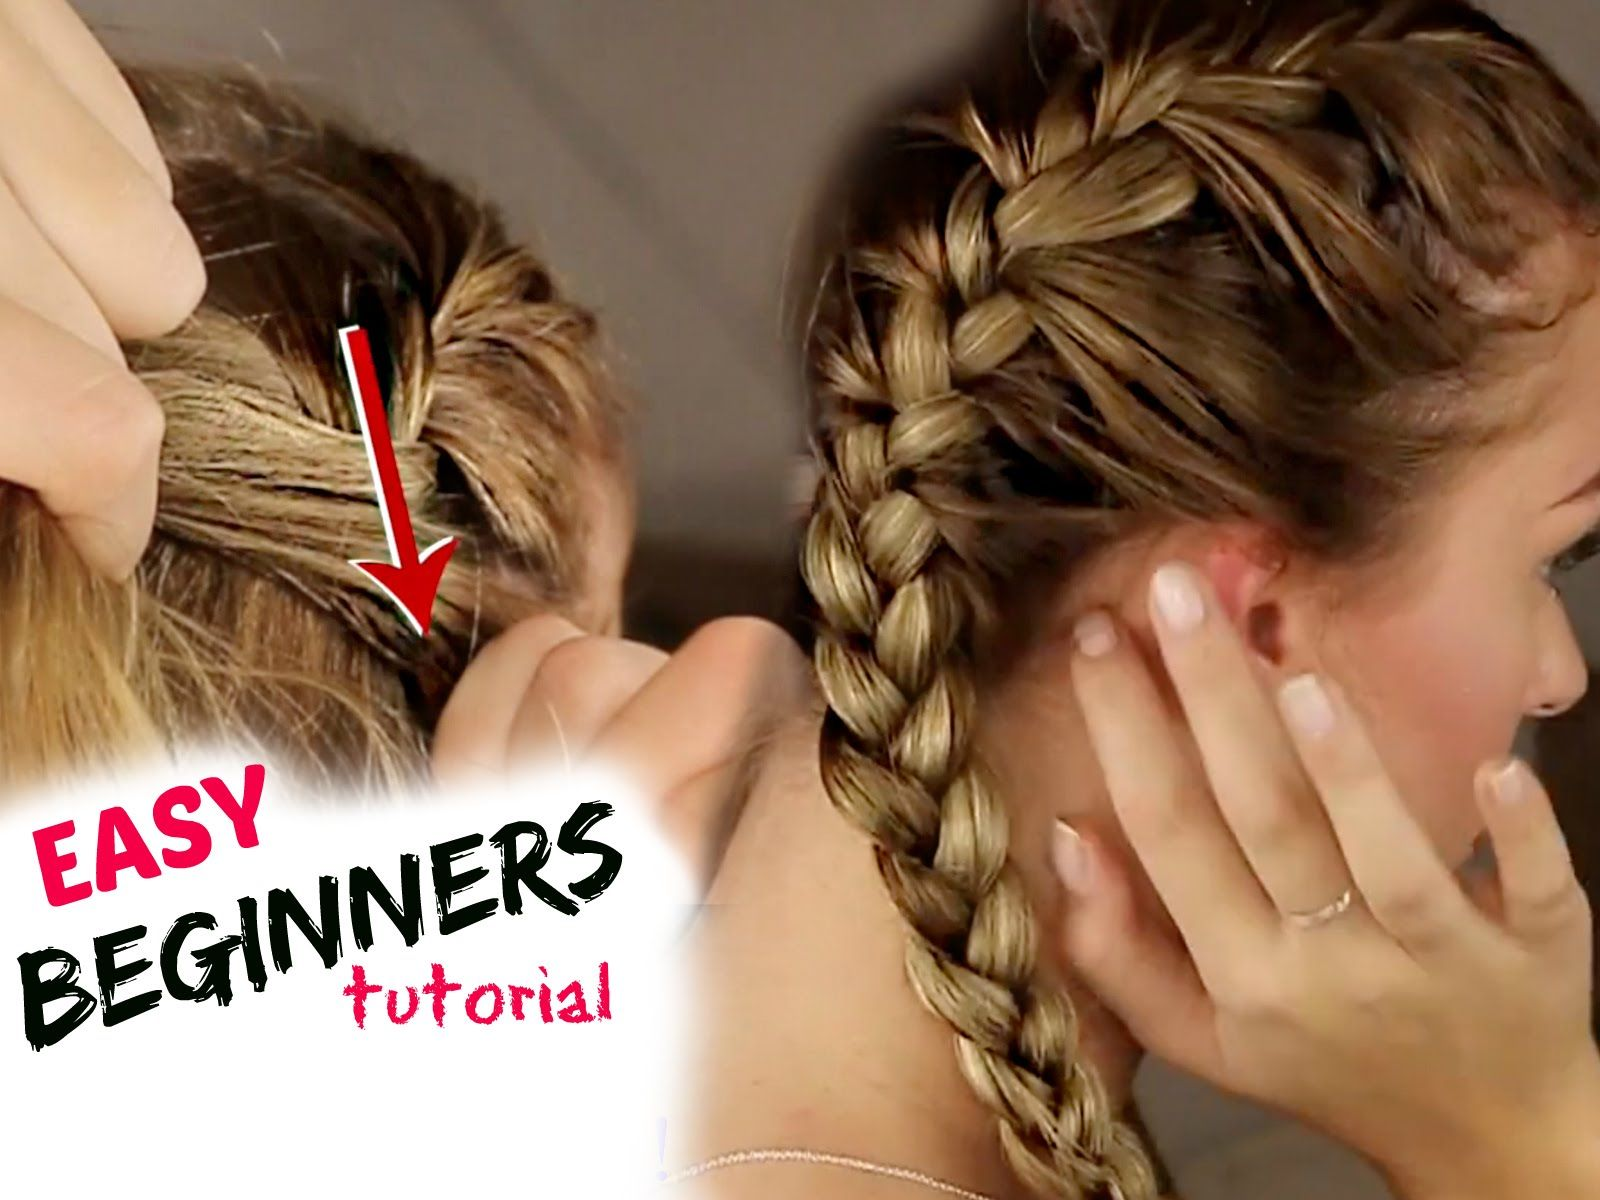 Tutorial How To Braid Your Hair Step By Step For Beginners Youtube Braided Hairstyles Easy Braided Hairstyles Tutorials Braiding Your Own Hair